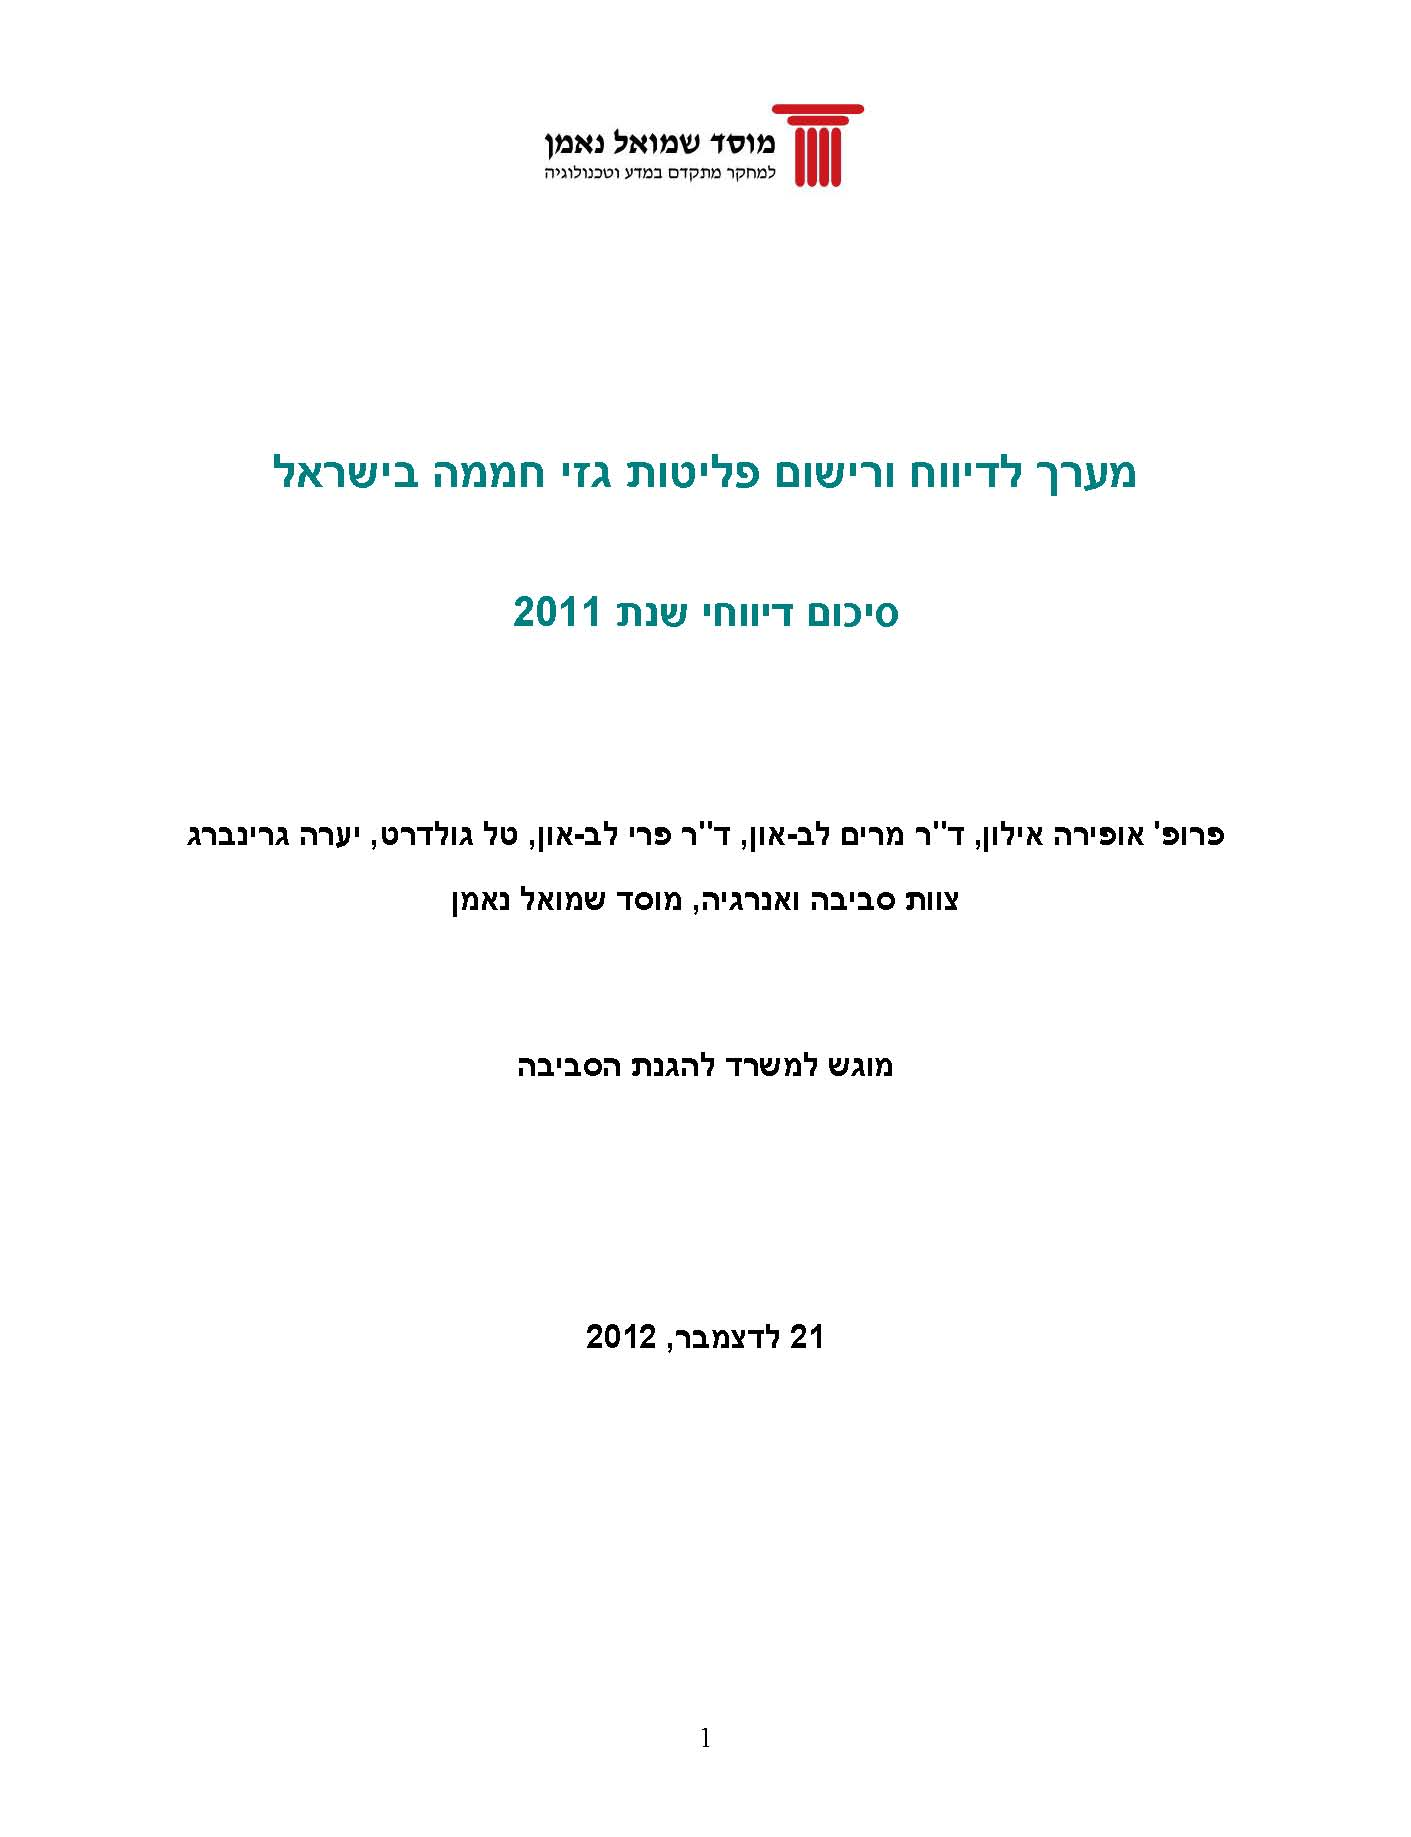 Greenhouse Gas Emissions Reporting and Registration System in Israel: Summary of Reports for 2011